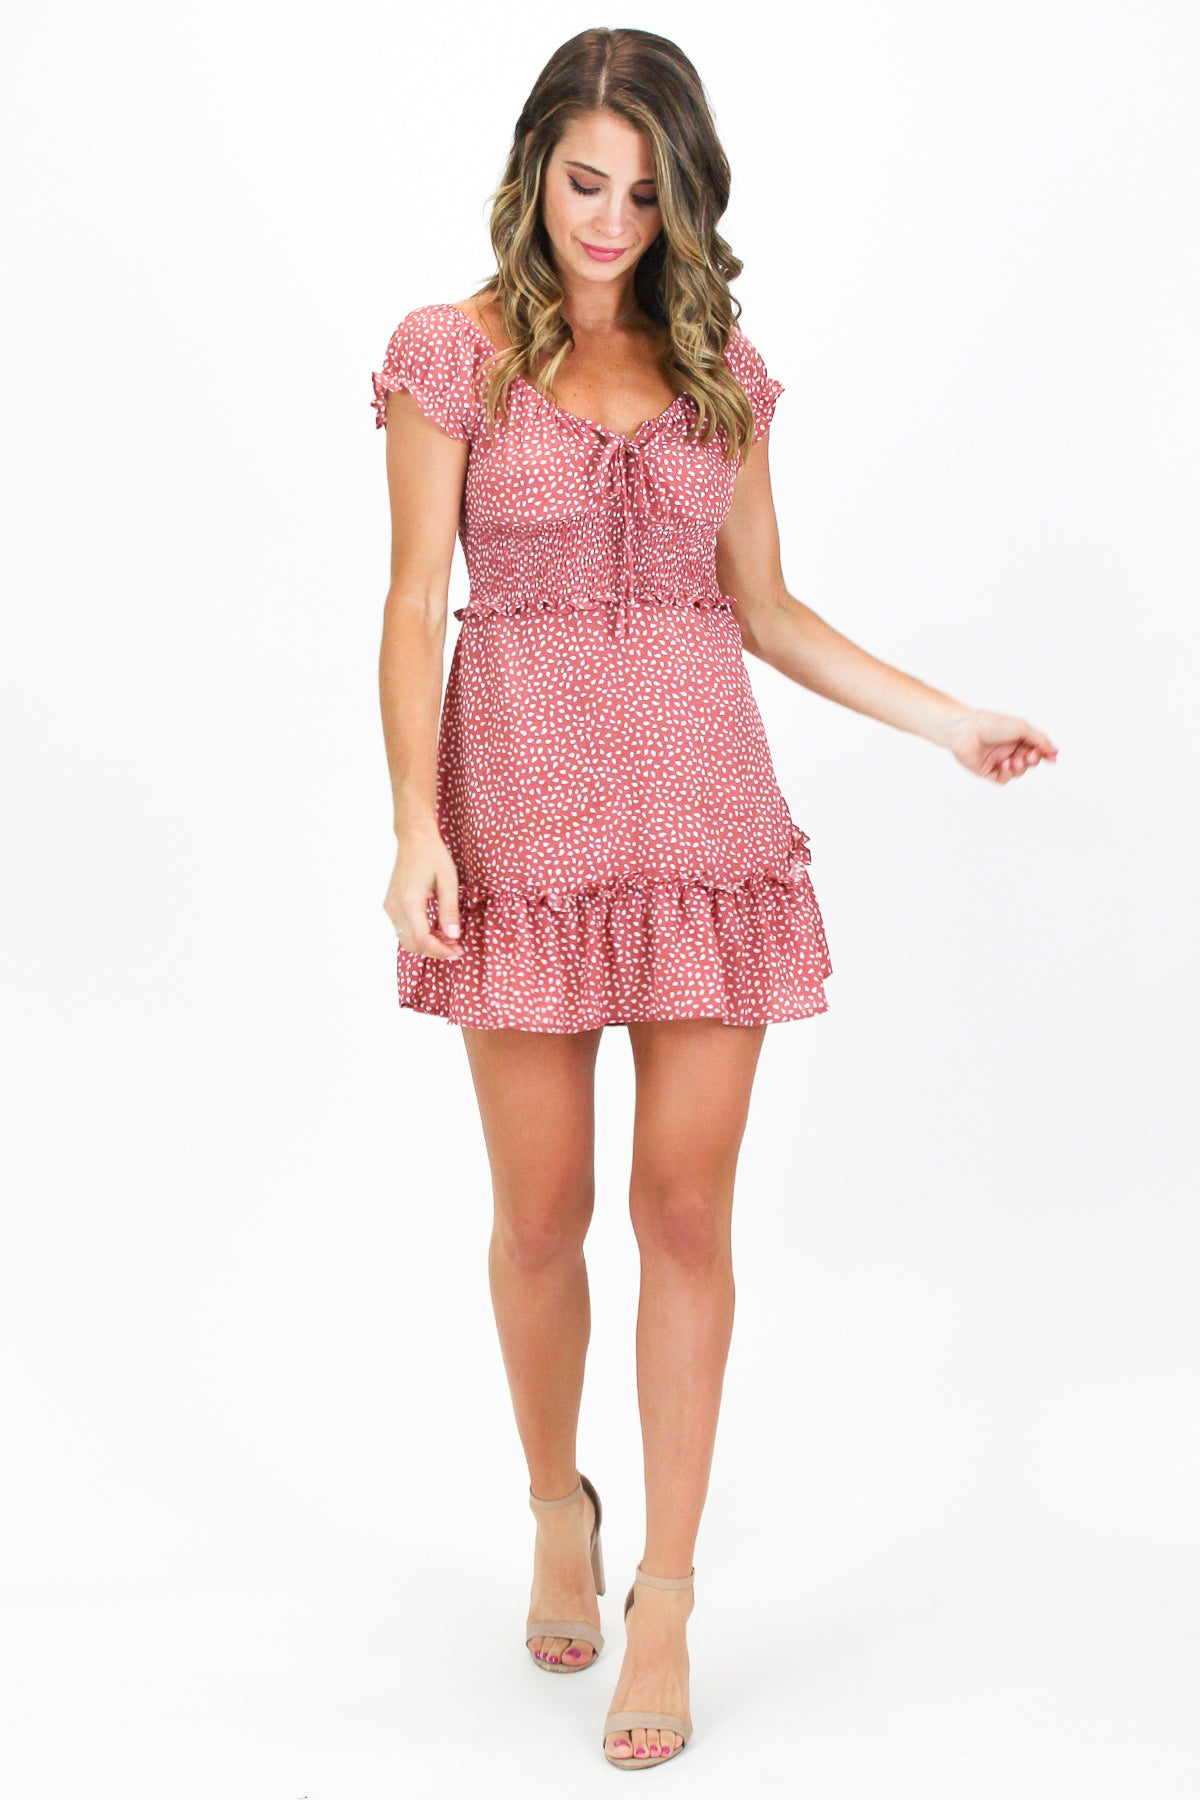 CORAL PATTERNED RUFFLE DRESS